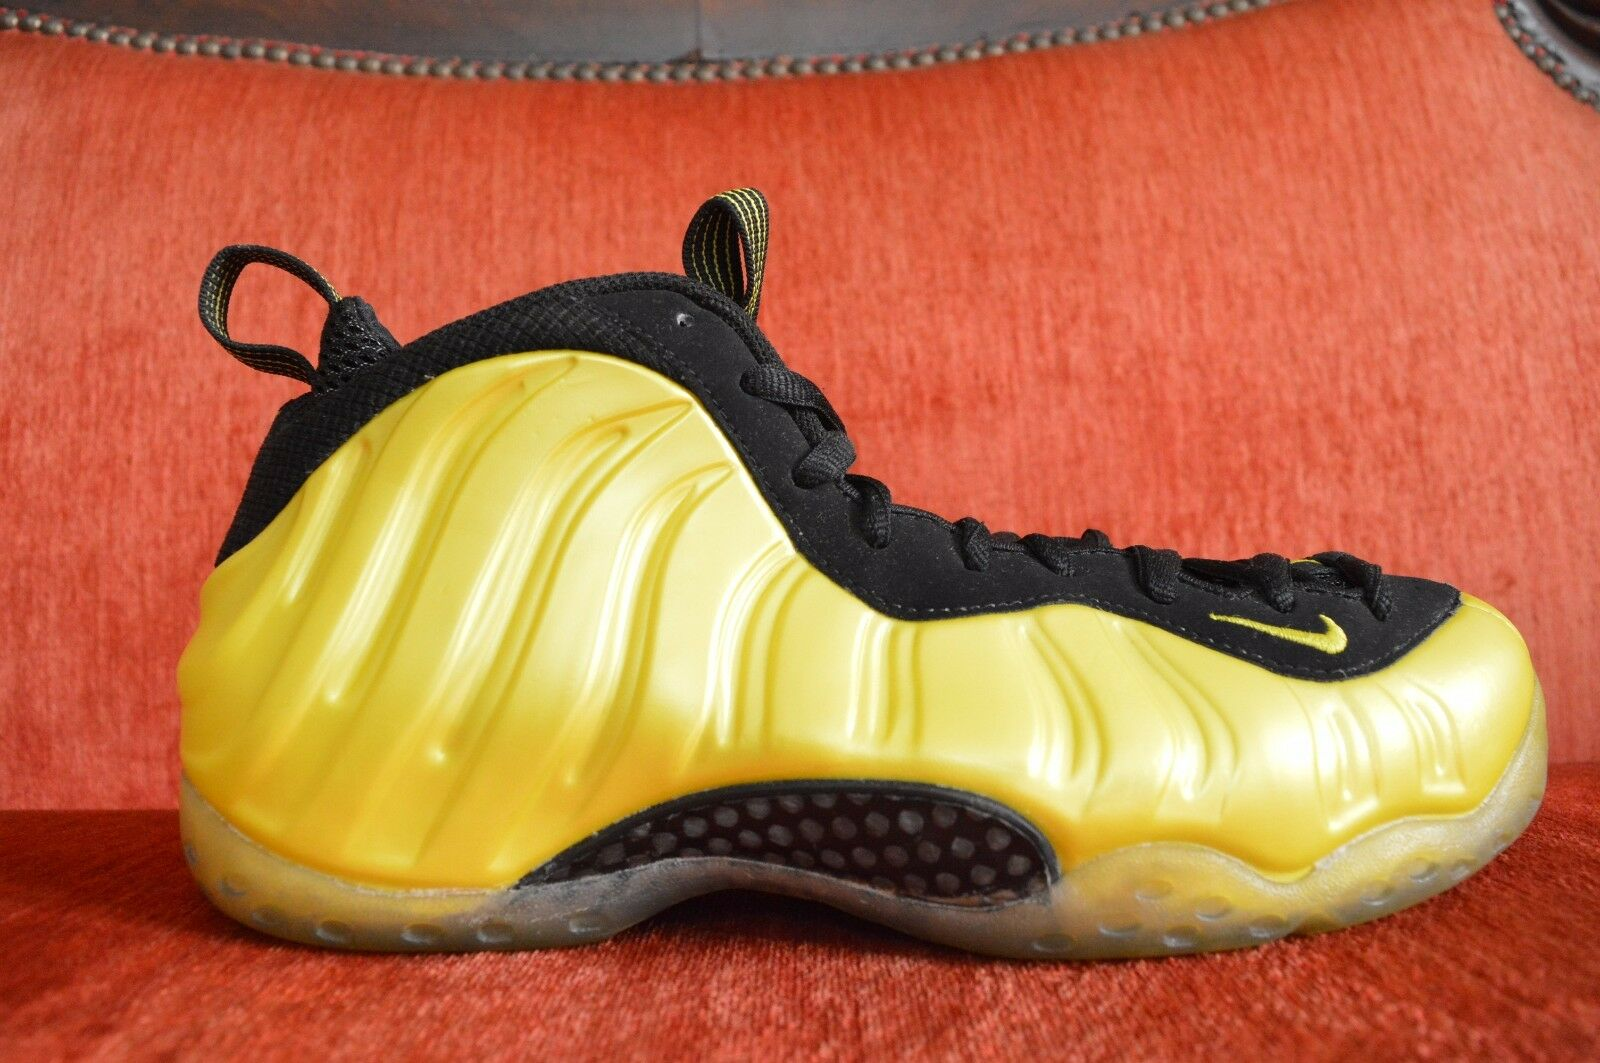 NDS Nike Foamposite One Electrolime Yellow Black Size 8.5 314996-330